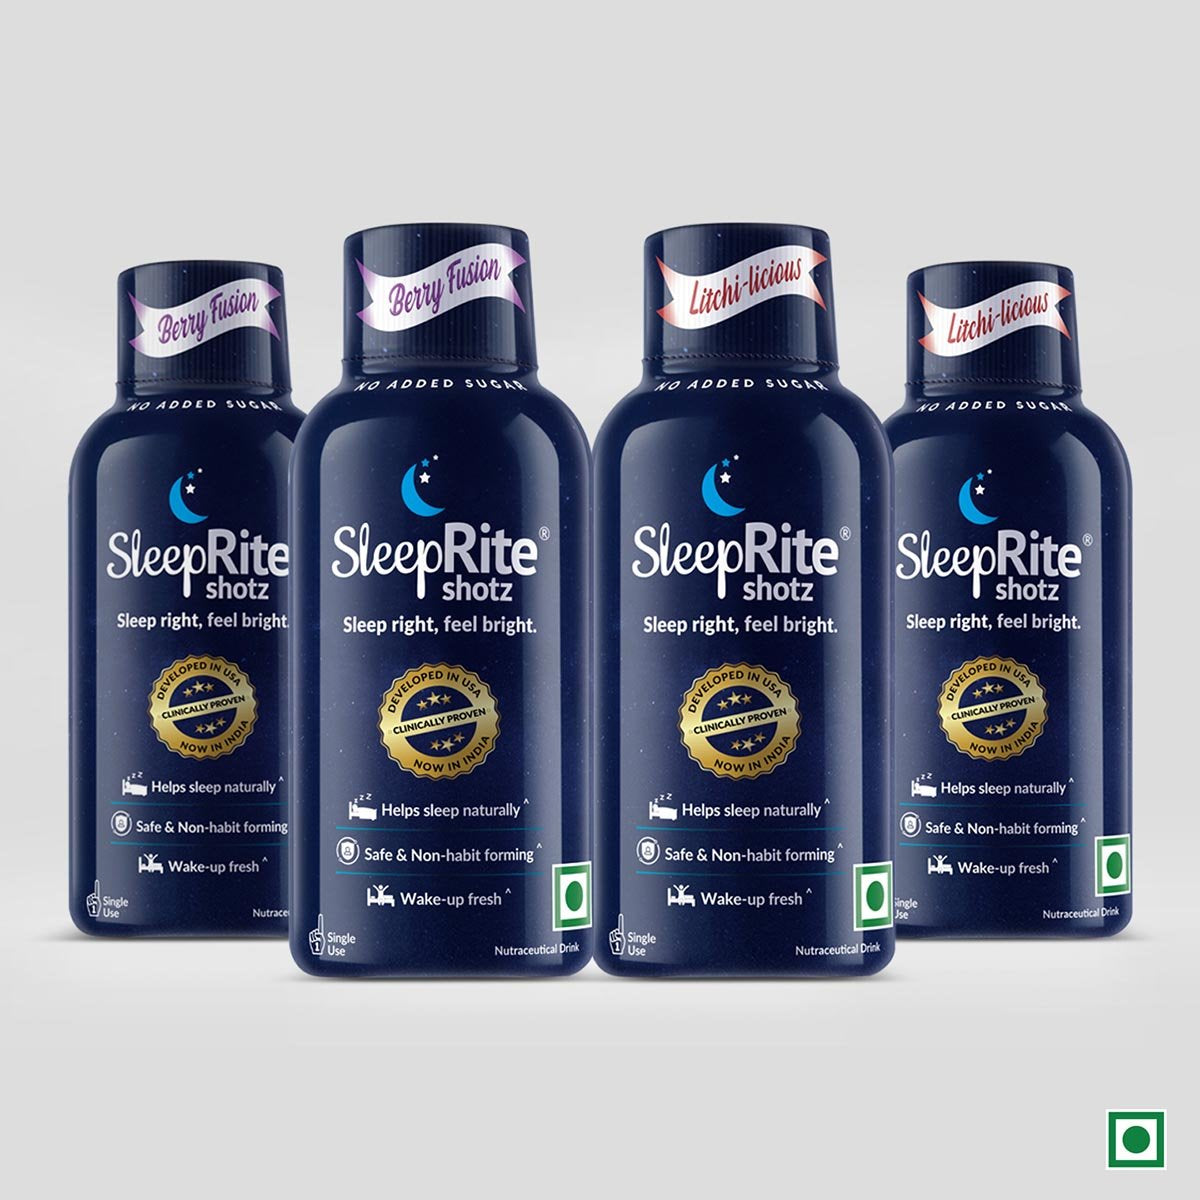 Sleeprite Shotz (Berry Fusion & Litchi Licious) (Pack of 4)